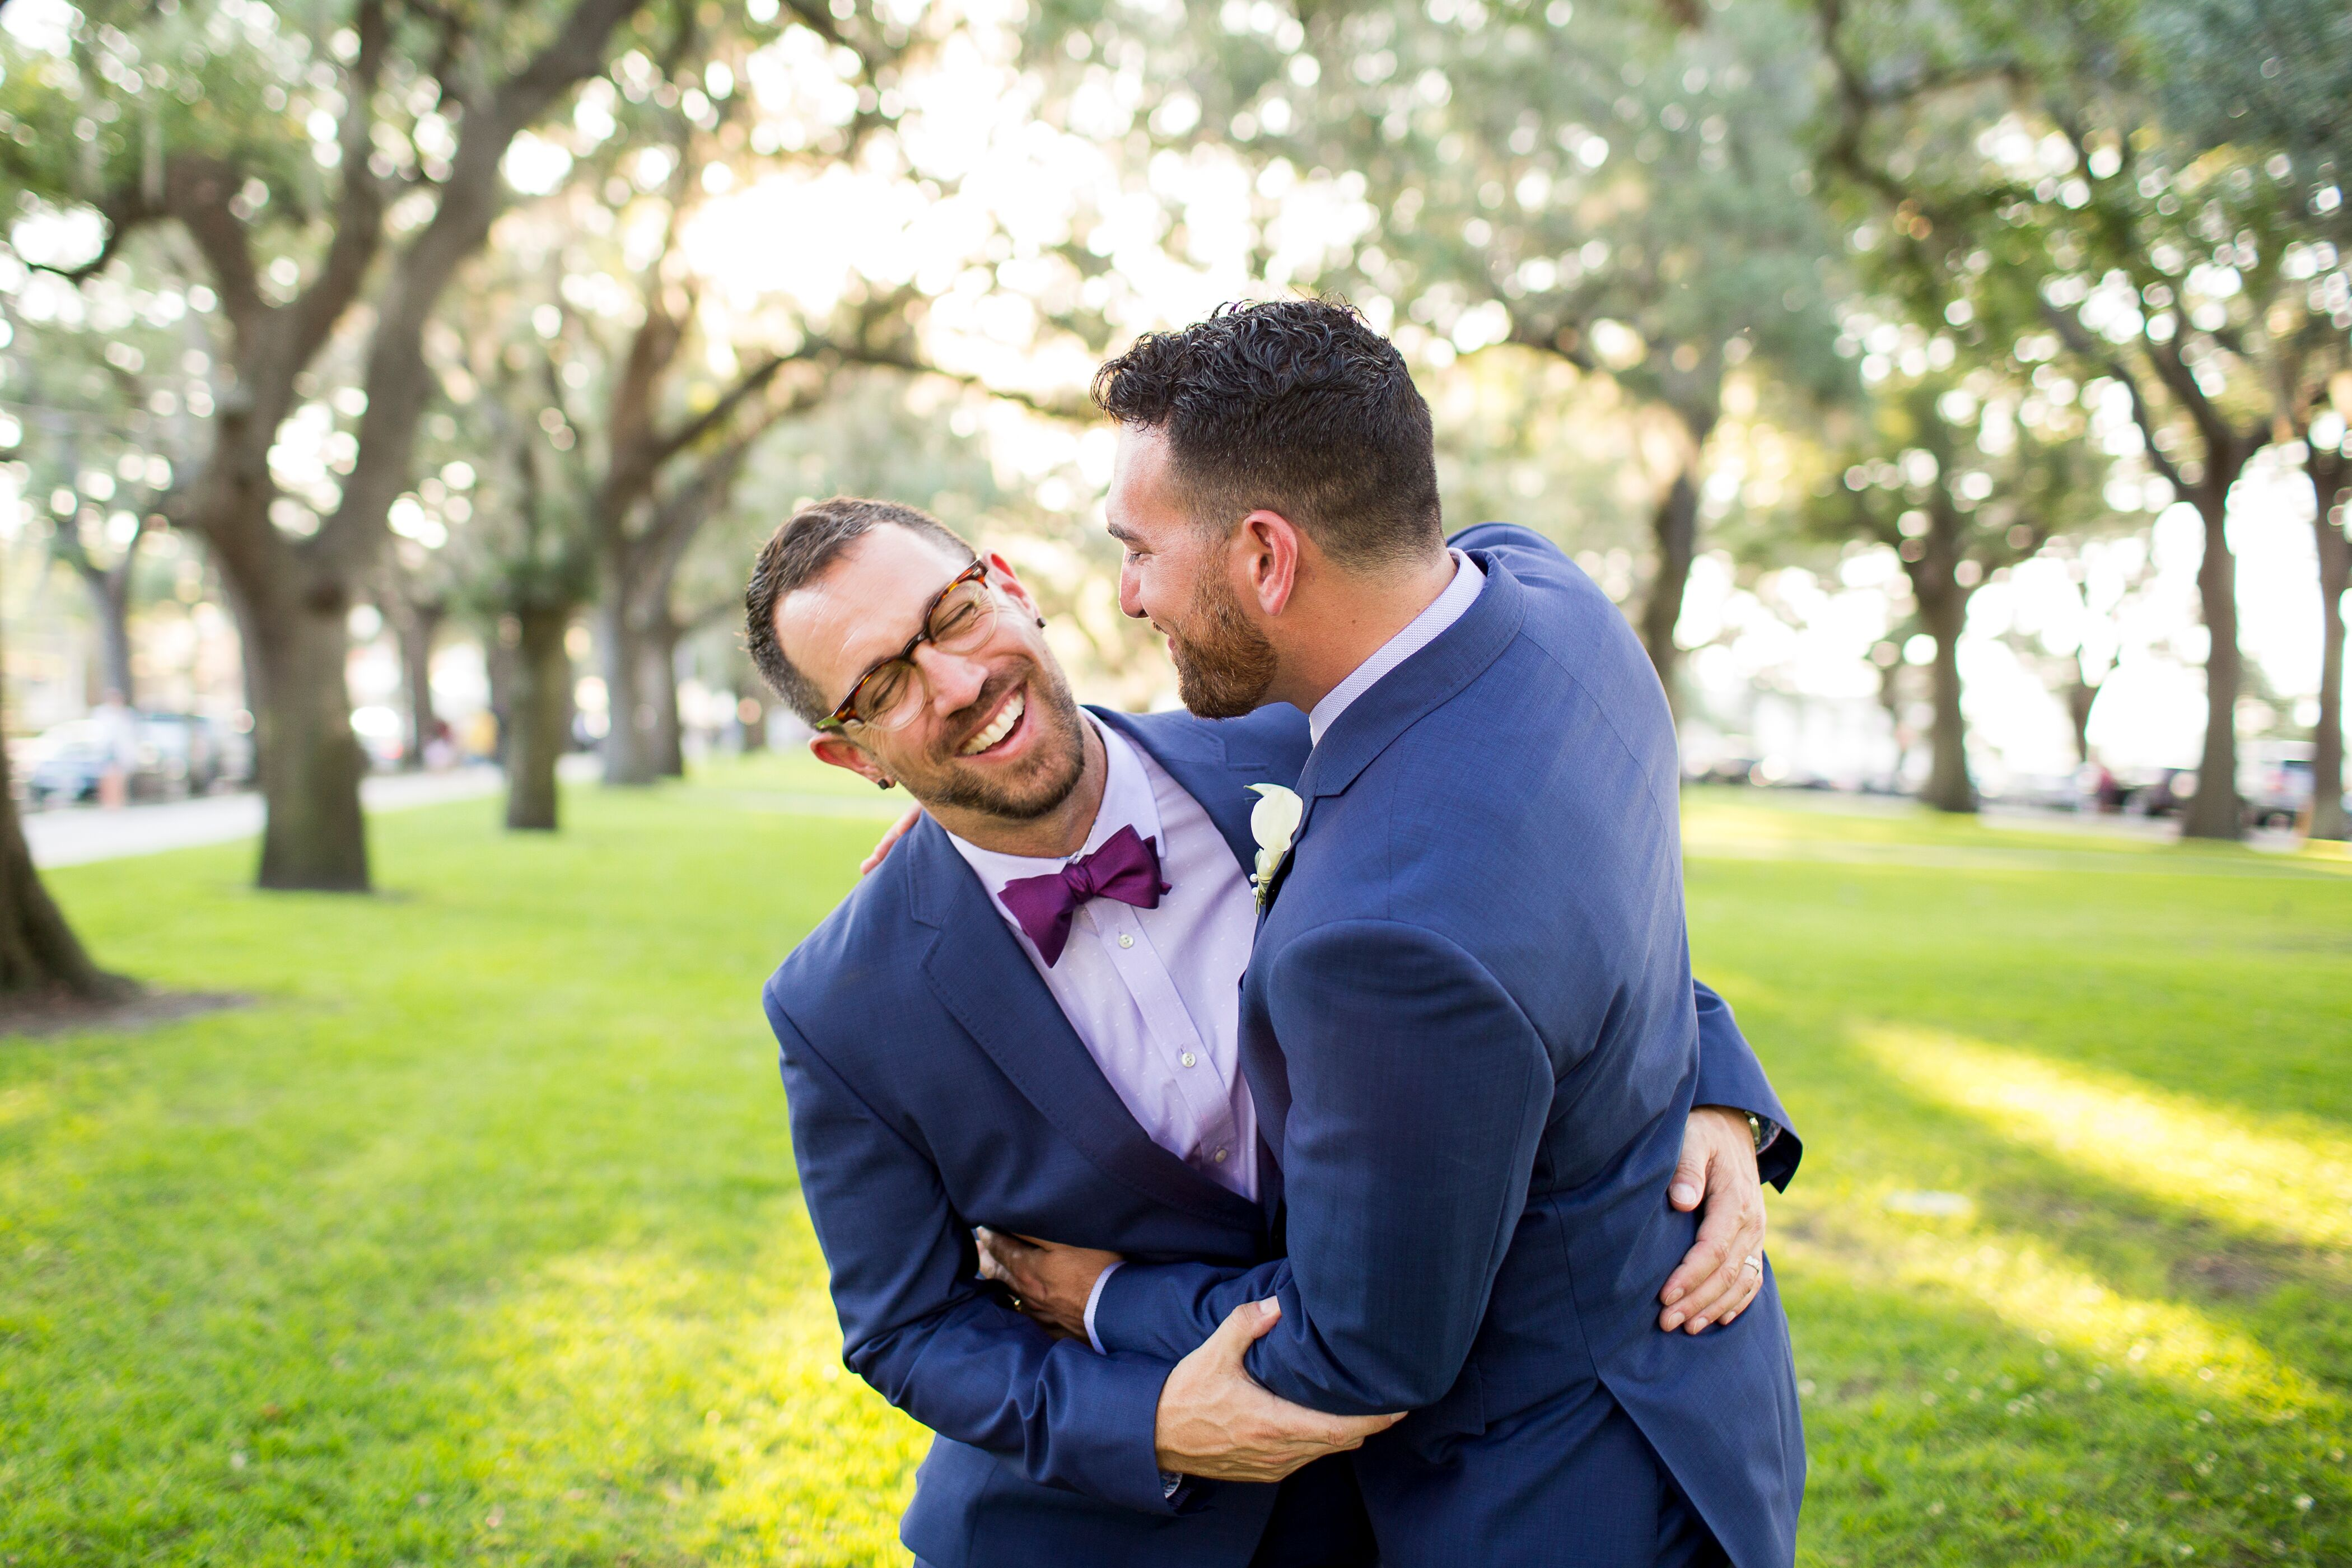 Kimpton Real Weddings: Same-Sex Couple Outside The Kimpton Brice Hotel In Savannah